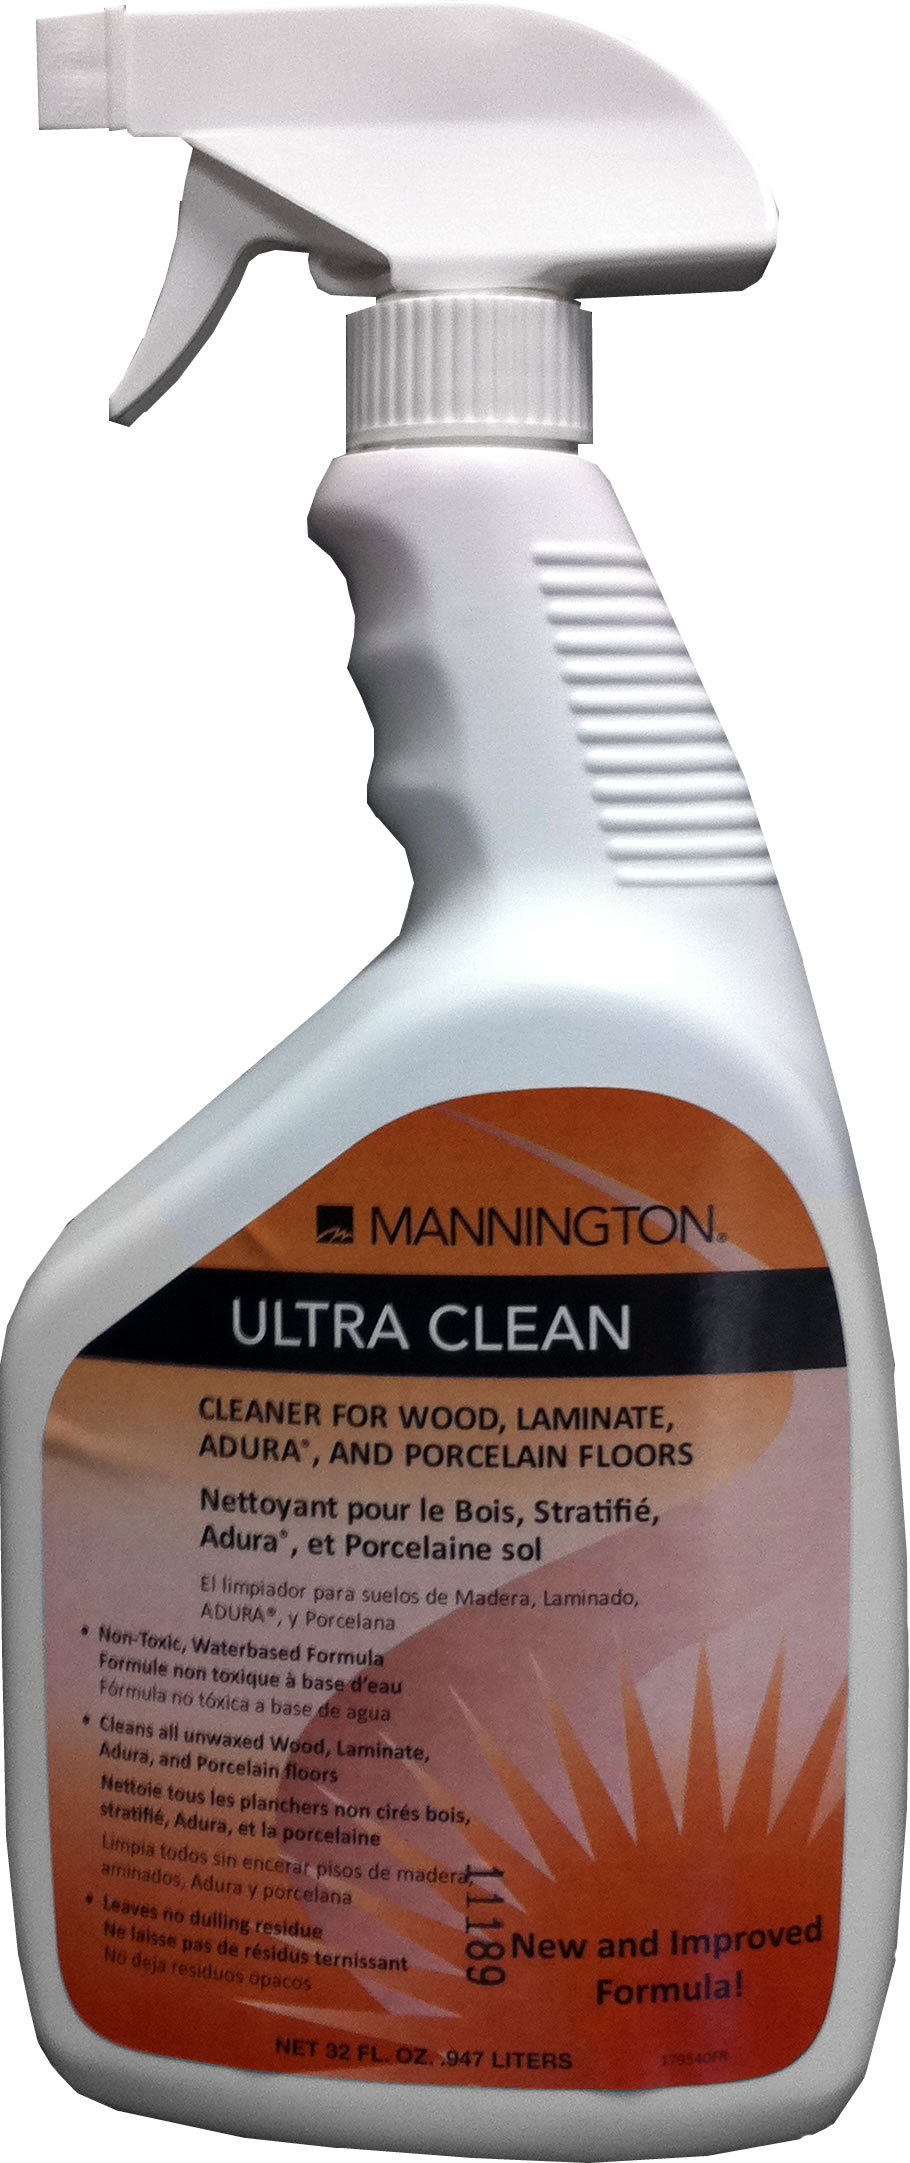 Mannington Ultra Clean Floor Cleaner Spray - 32oz at Sears.com